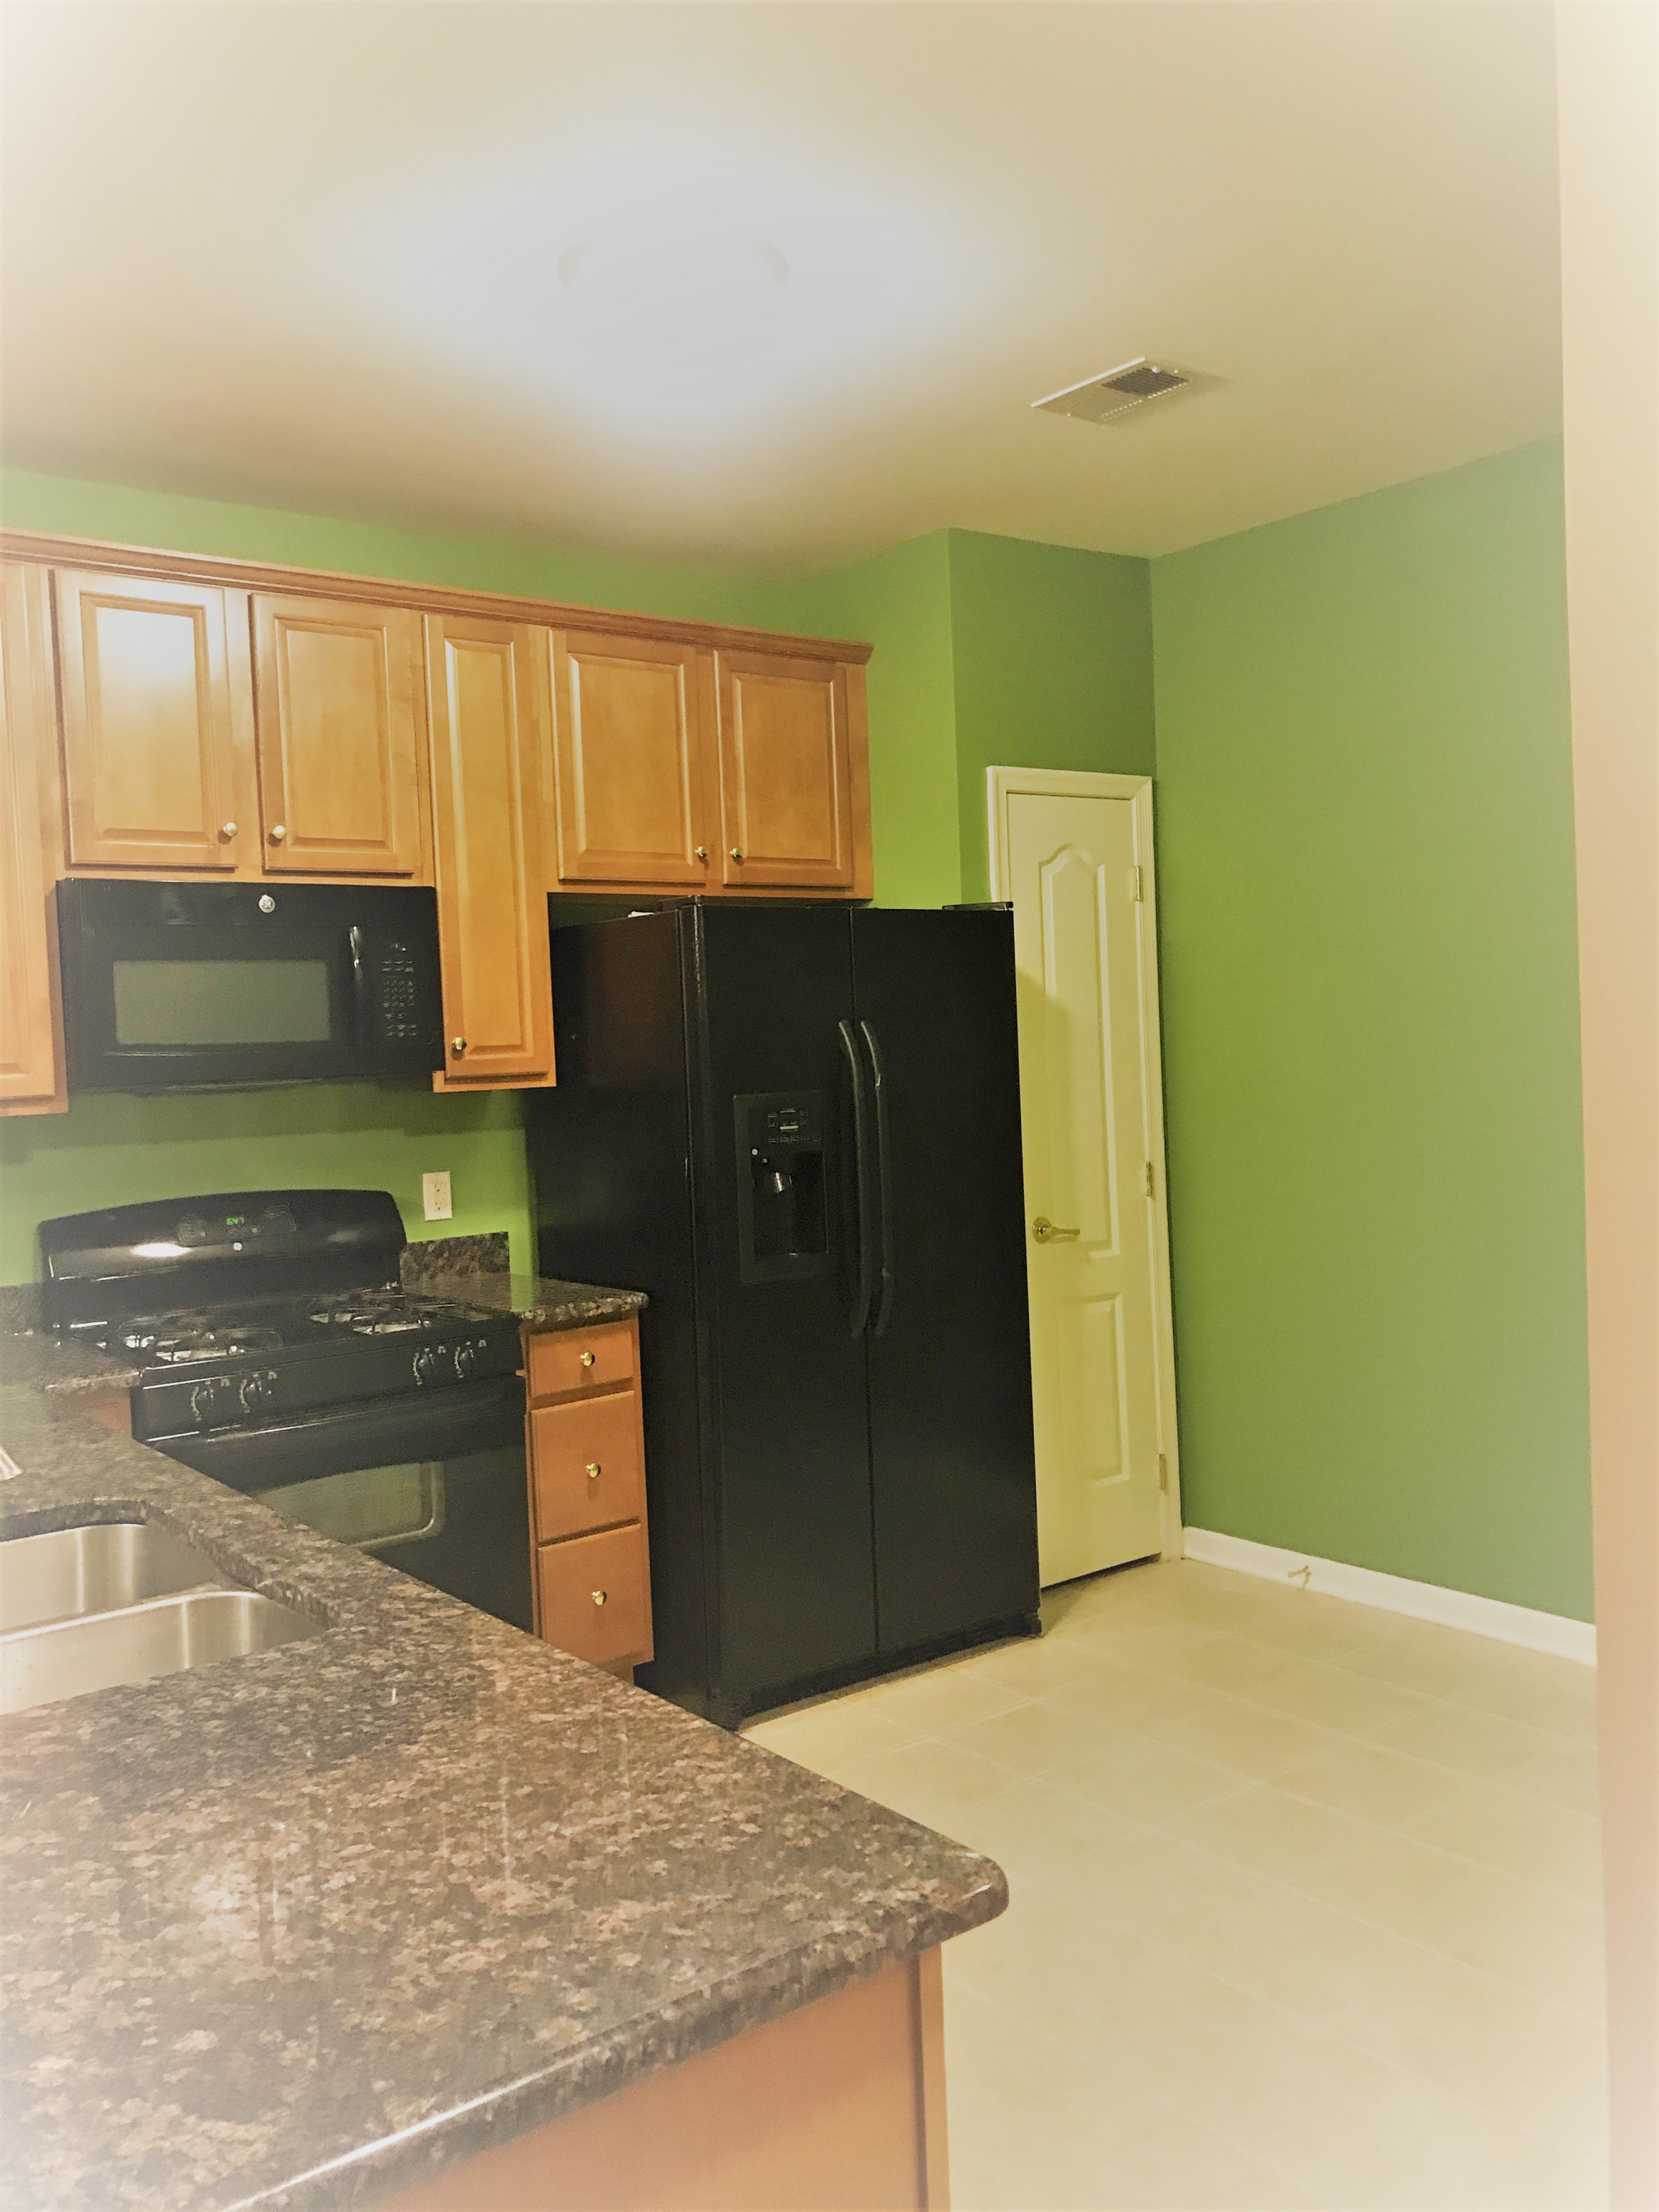 Close  Rarely Available Luxury 3 Bed 2 Bath Apartment With Garage For Rent  In Edison Rarely Available Luxury 3 Bed 2 Bath Apartment With Garage For  . 3 Bedroom Apartments For Rent In Edison Nj. Home Design Ideas